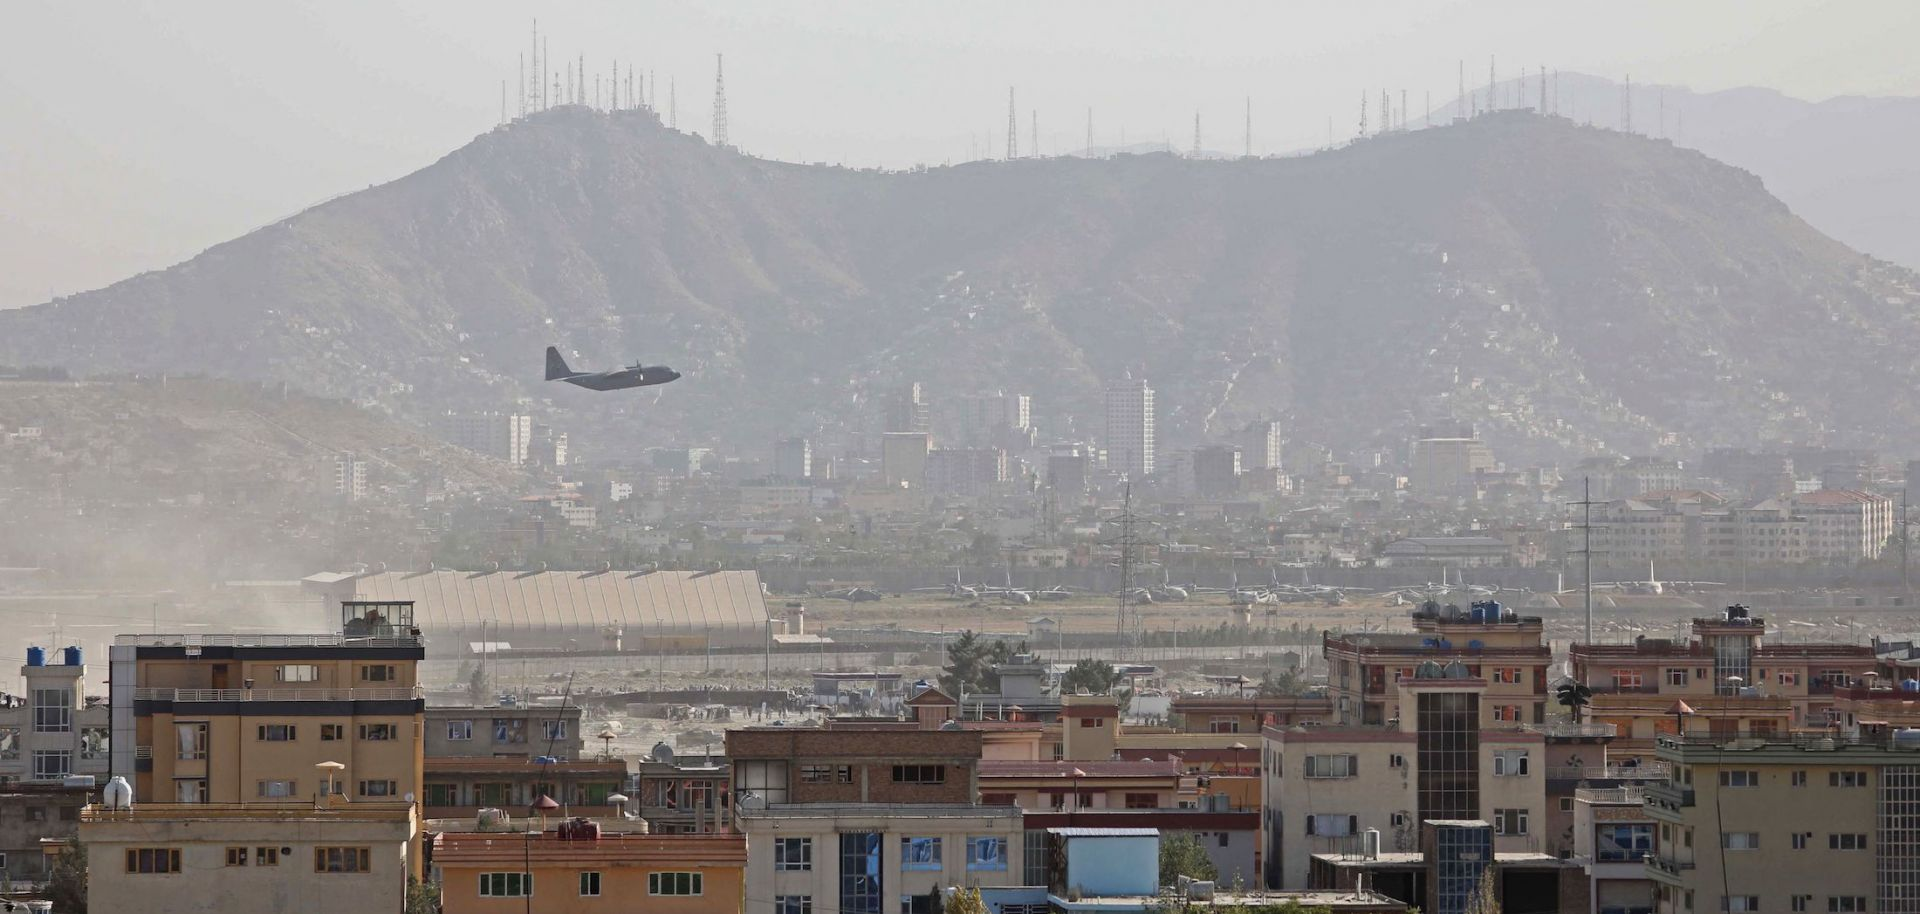 A military aircraft takes off from the airport in Kabul, Afghanistan, on Aug. 27, 2021.